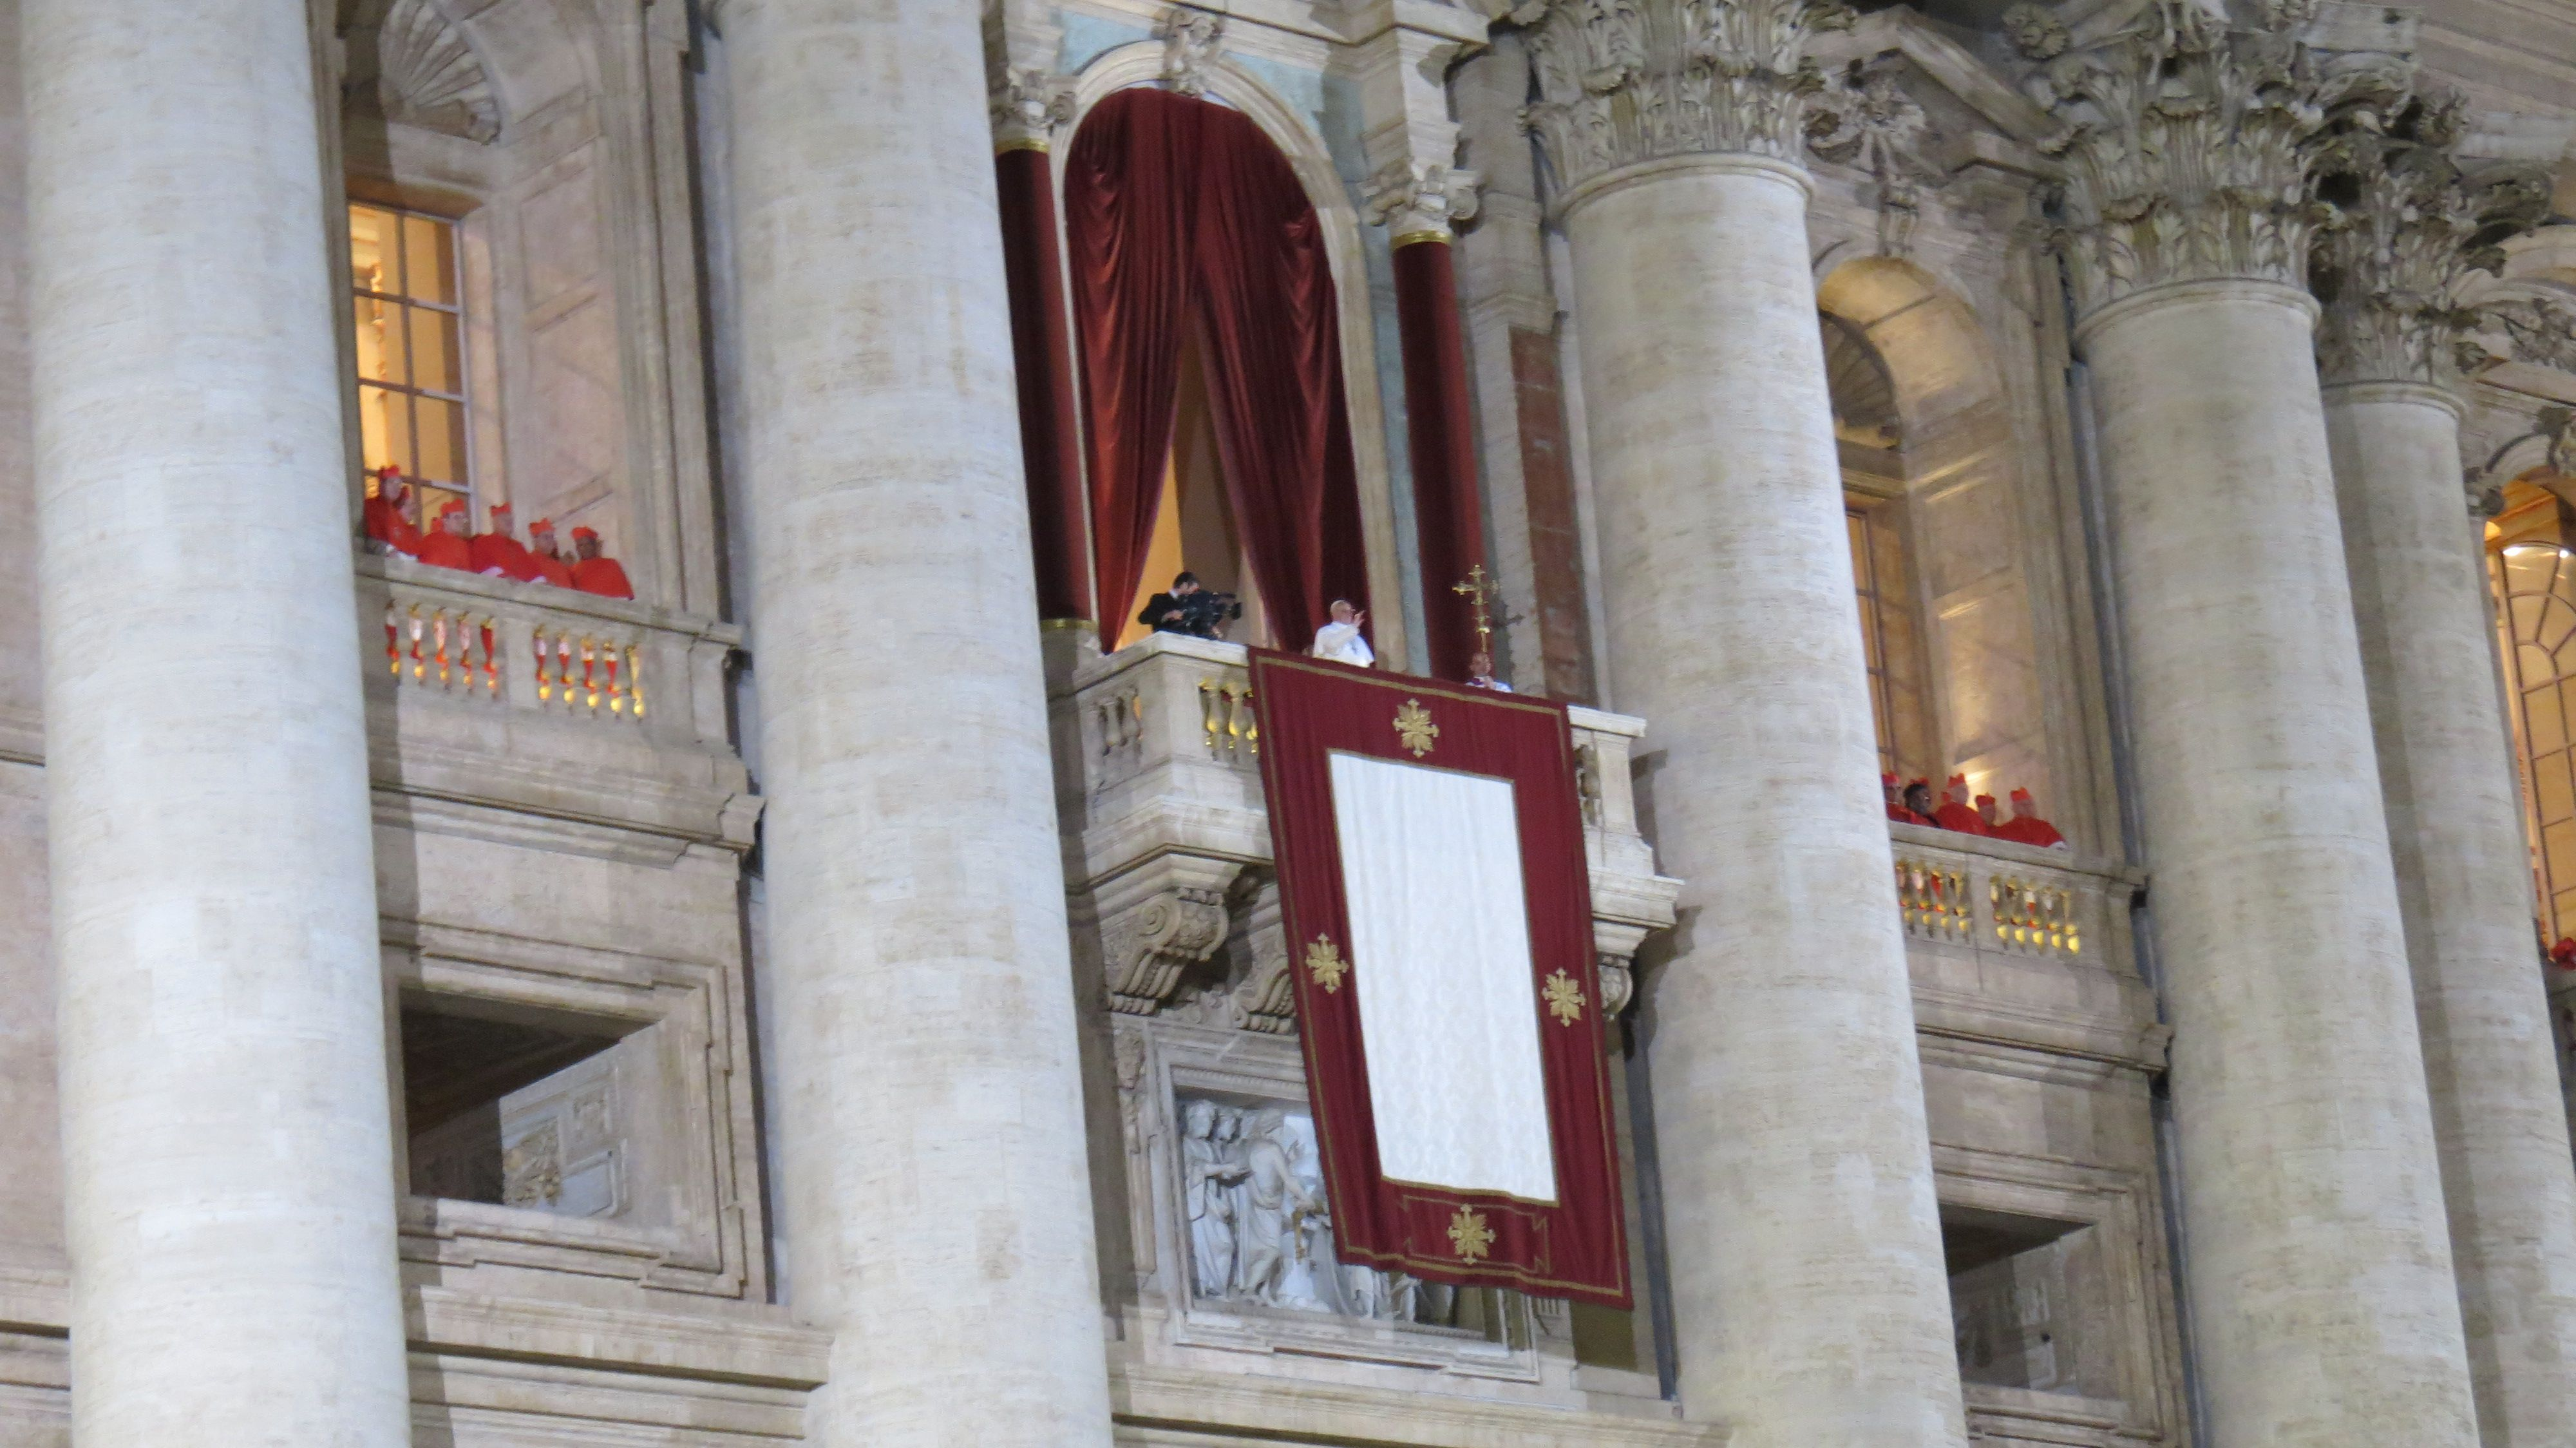 Pope Francis as he blesses the crowd at St Peter's Square on his election. Caritas/Patrick Nicholson